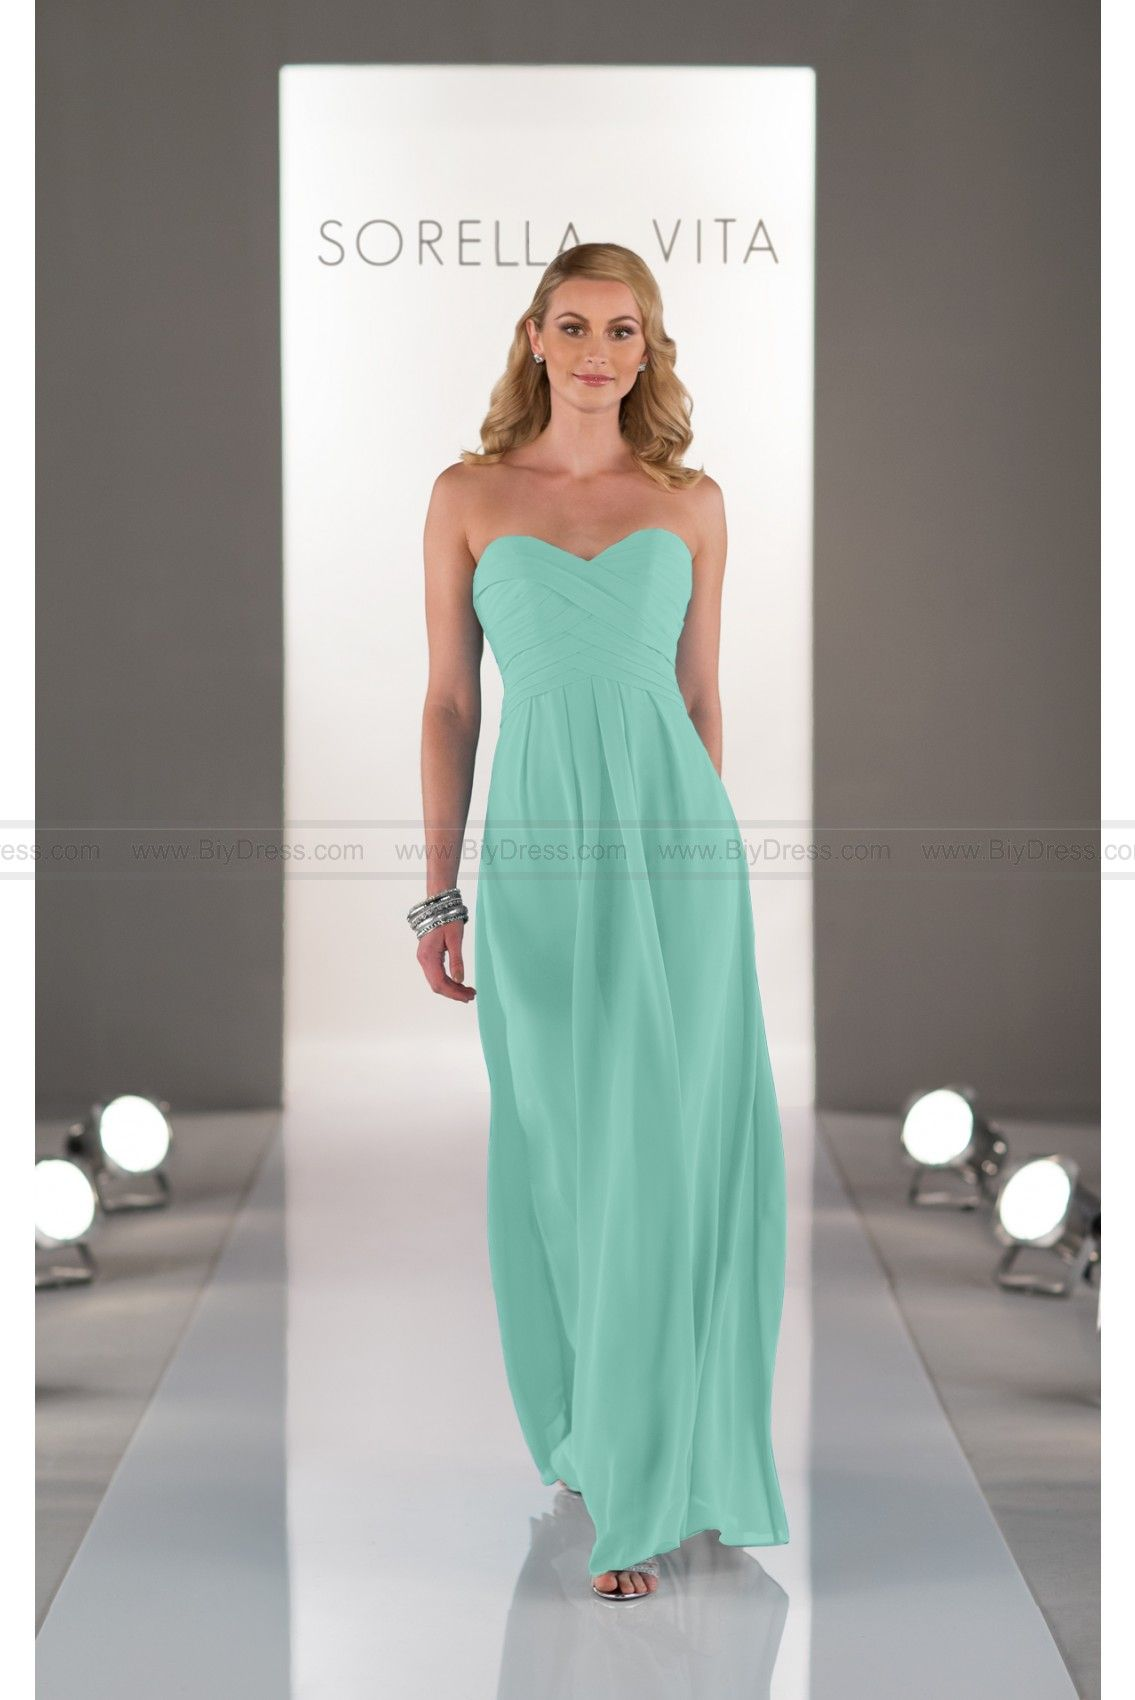 Sorella Vita Unique Bridesmaid Dress Style 8405 | best bridesmaid ...